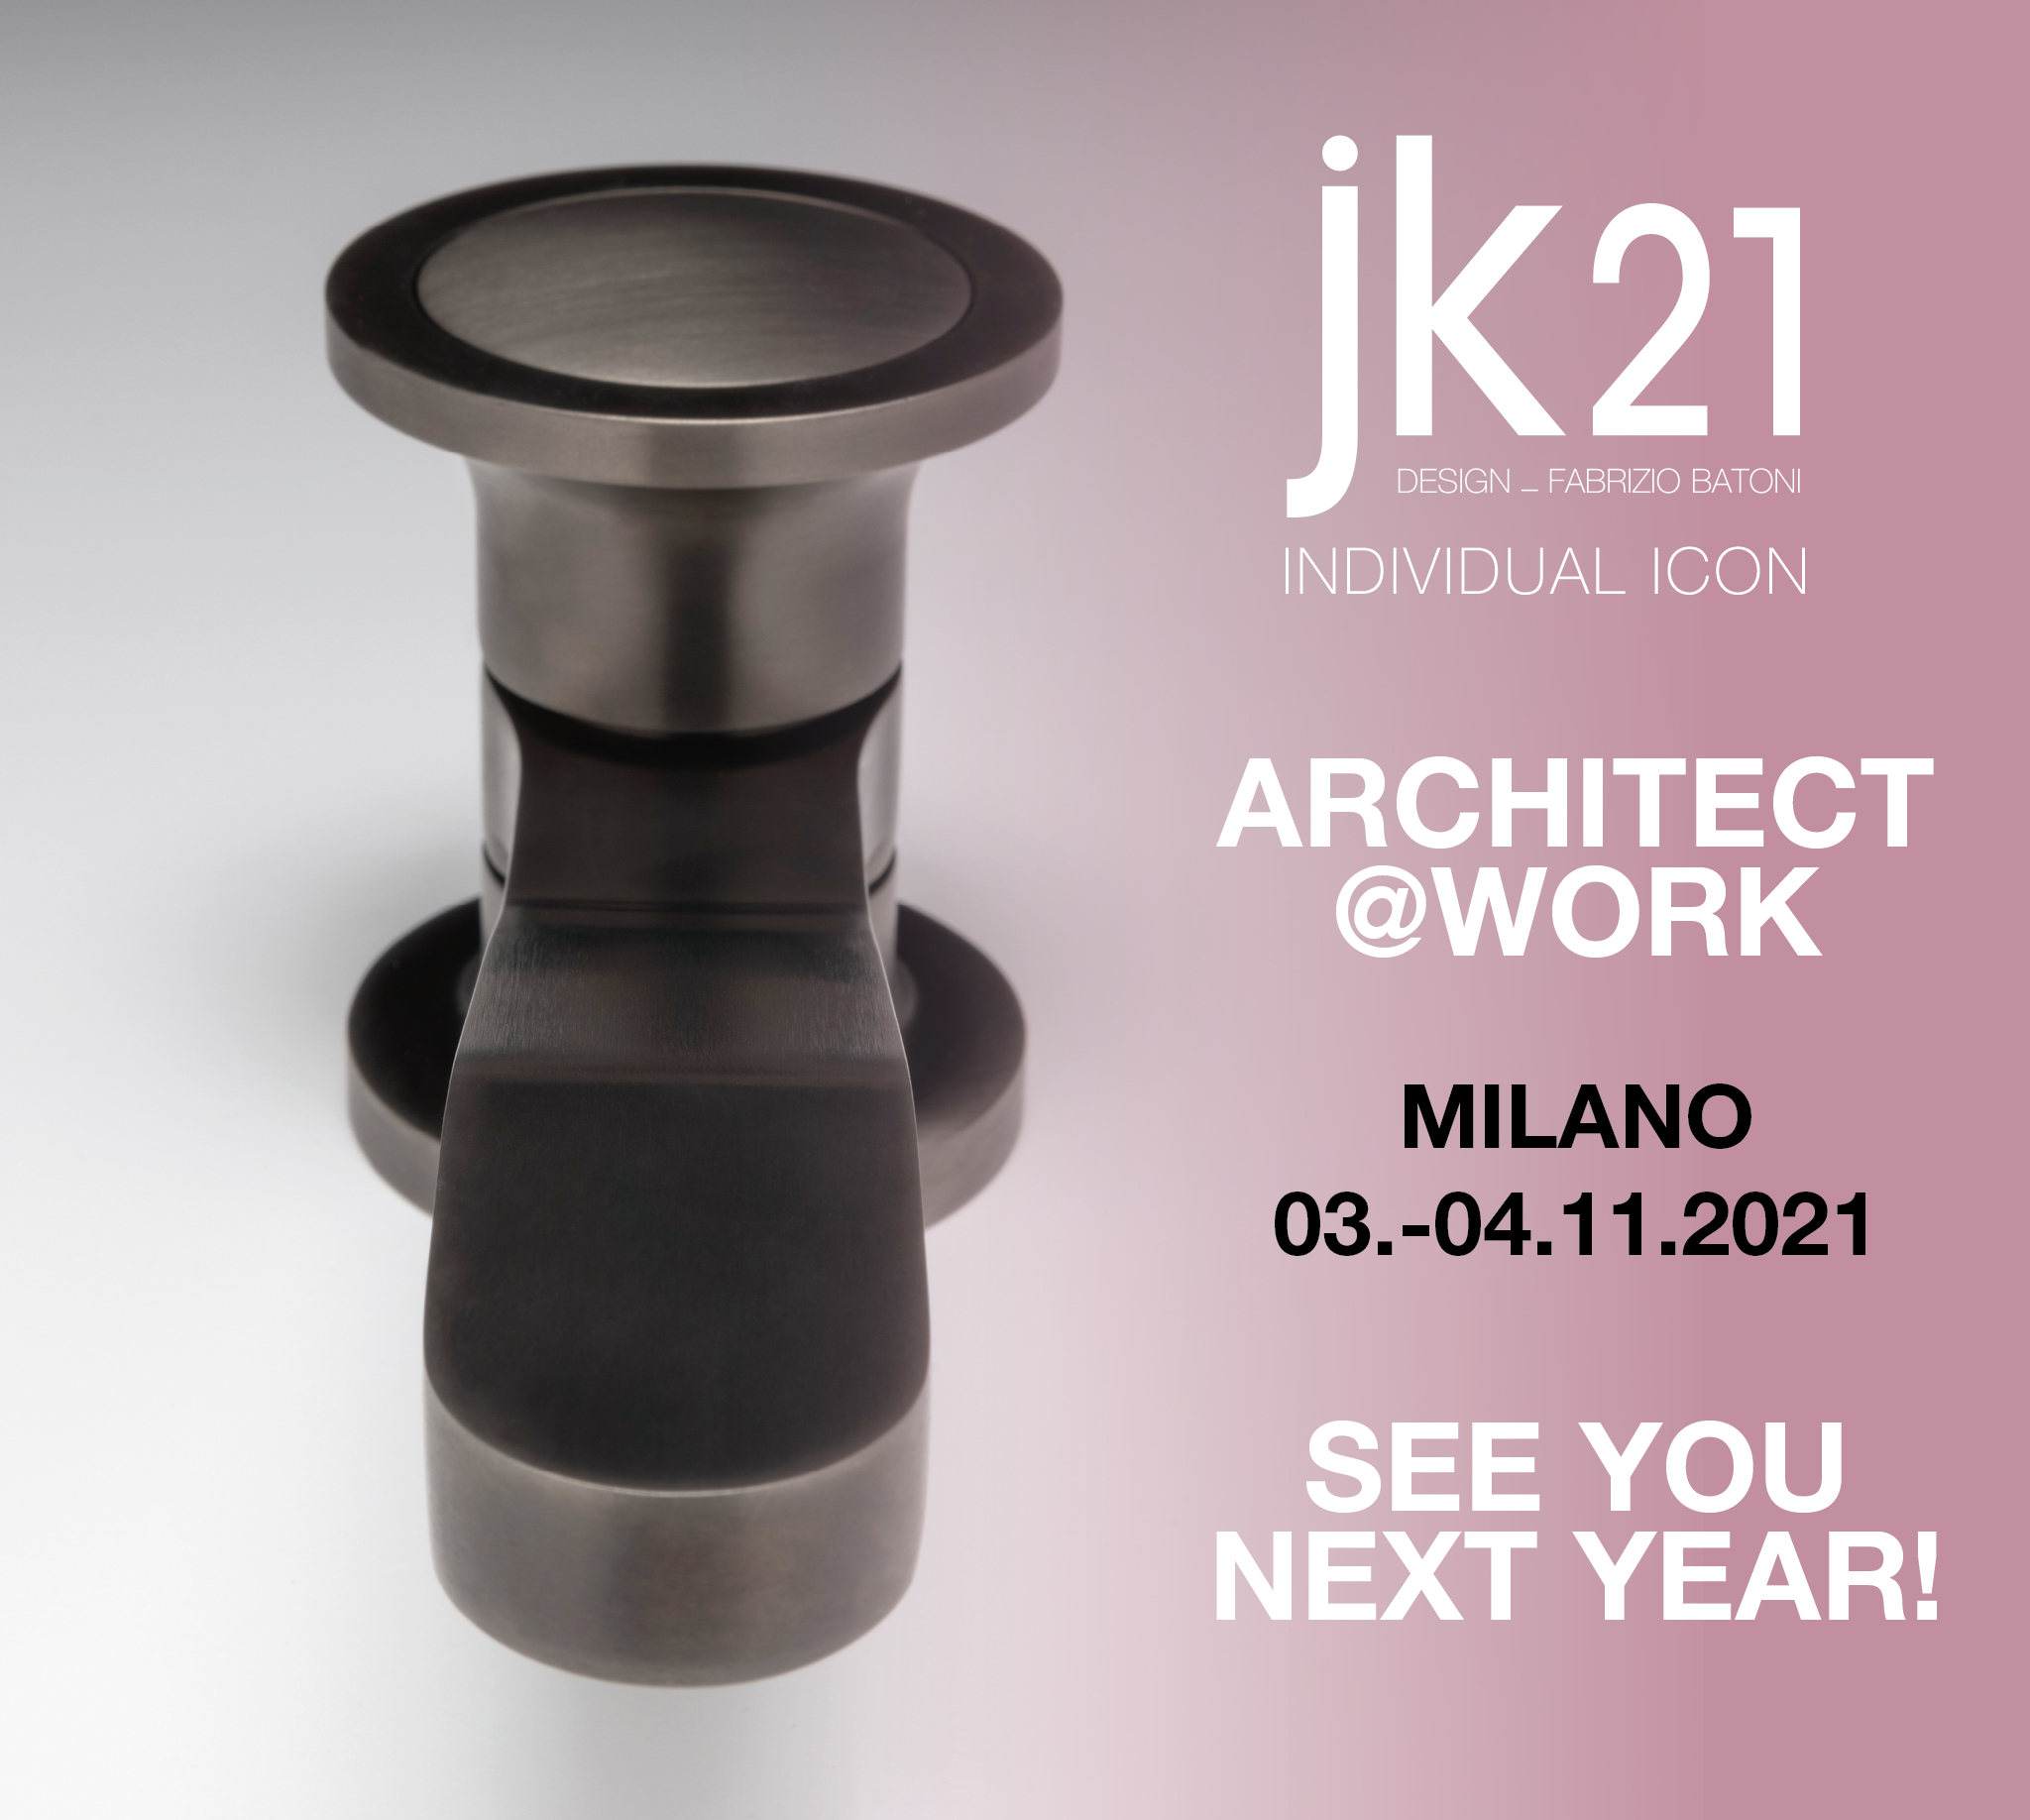 Architect @ Work Milan postponed to 2021